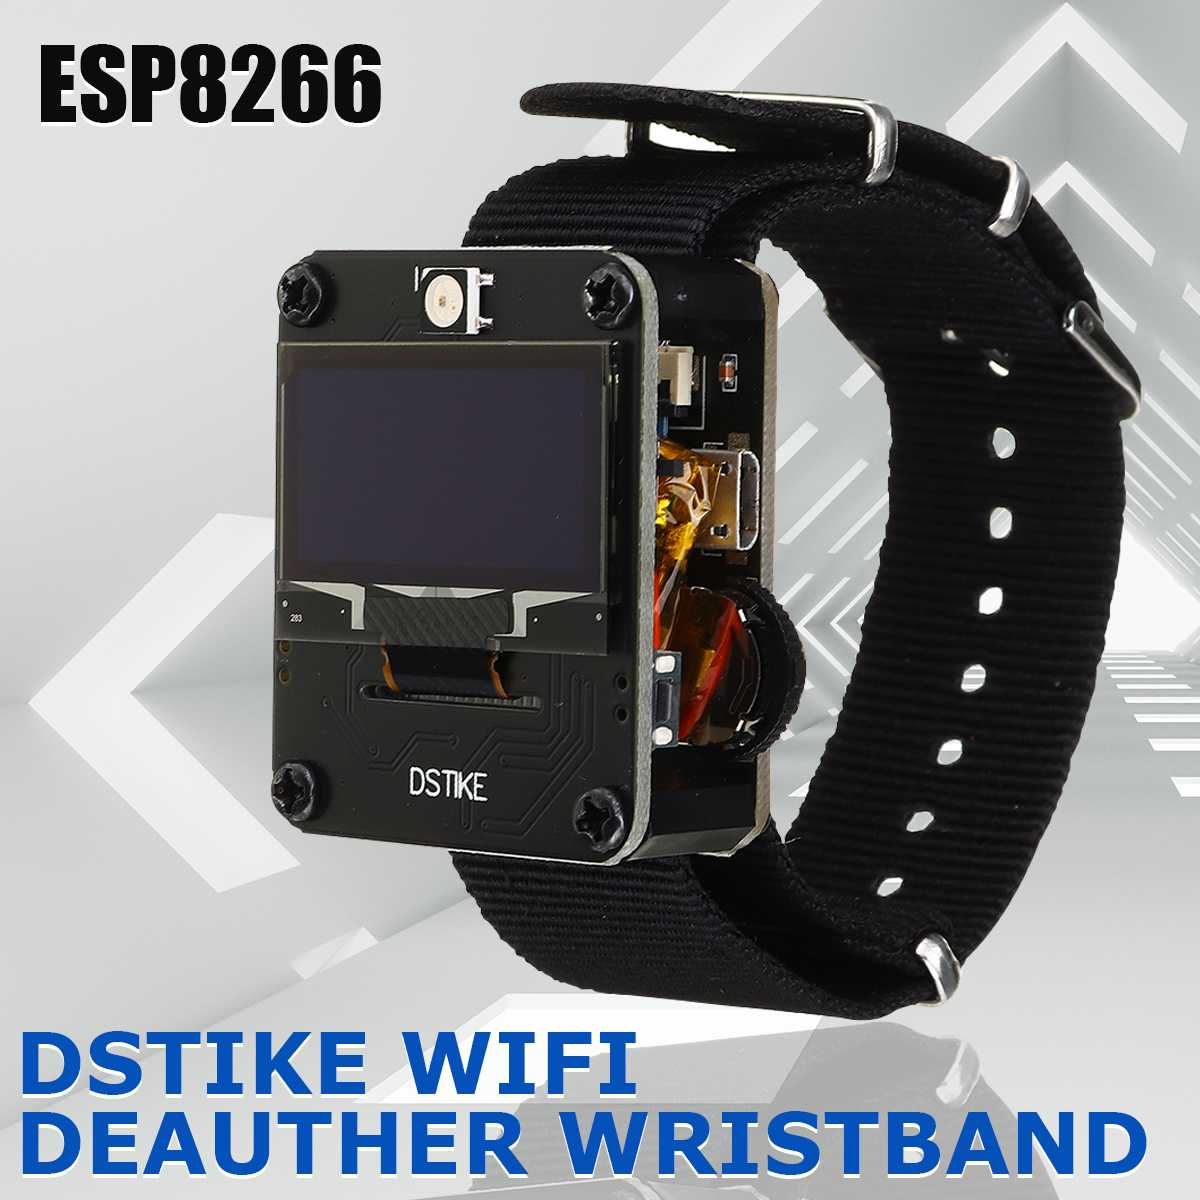 DSTIKE Deauther Wristband Wearable WiFi Attack Control Test Smart Watch LED ESP8266 Development Board For Arduino